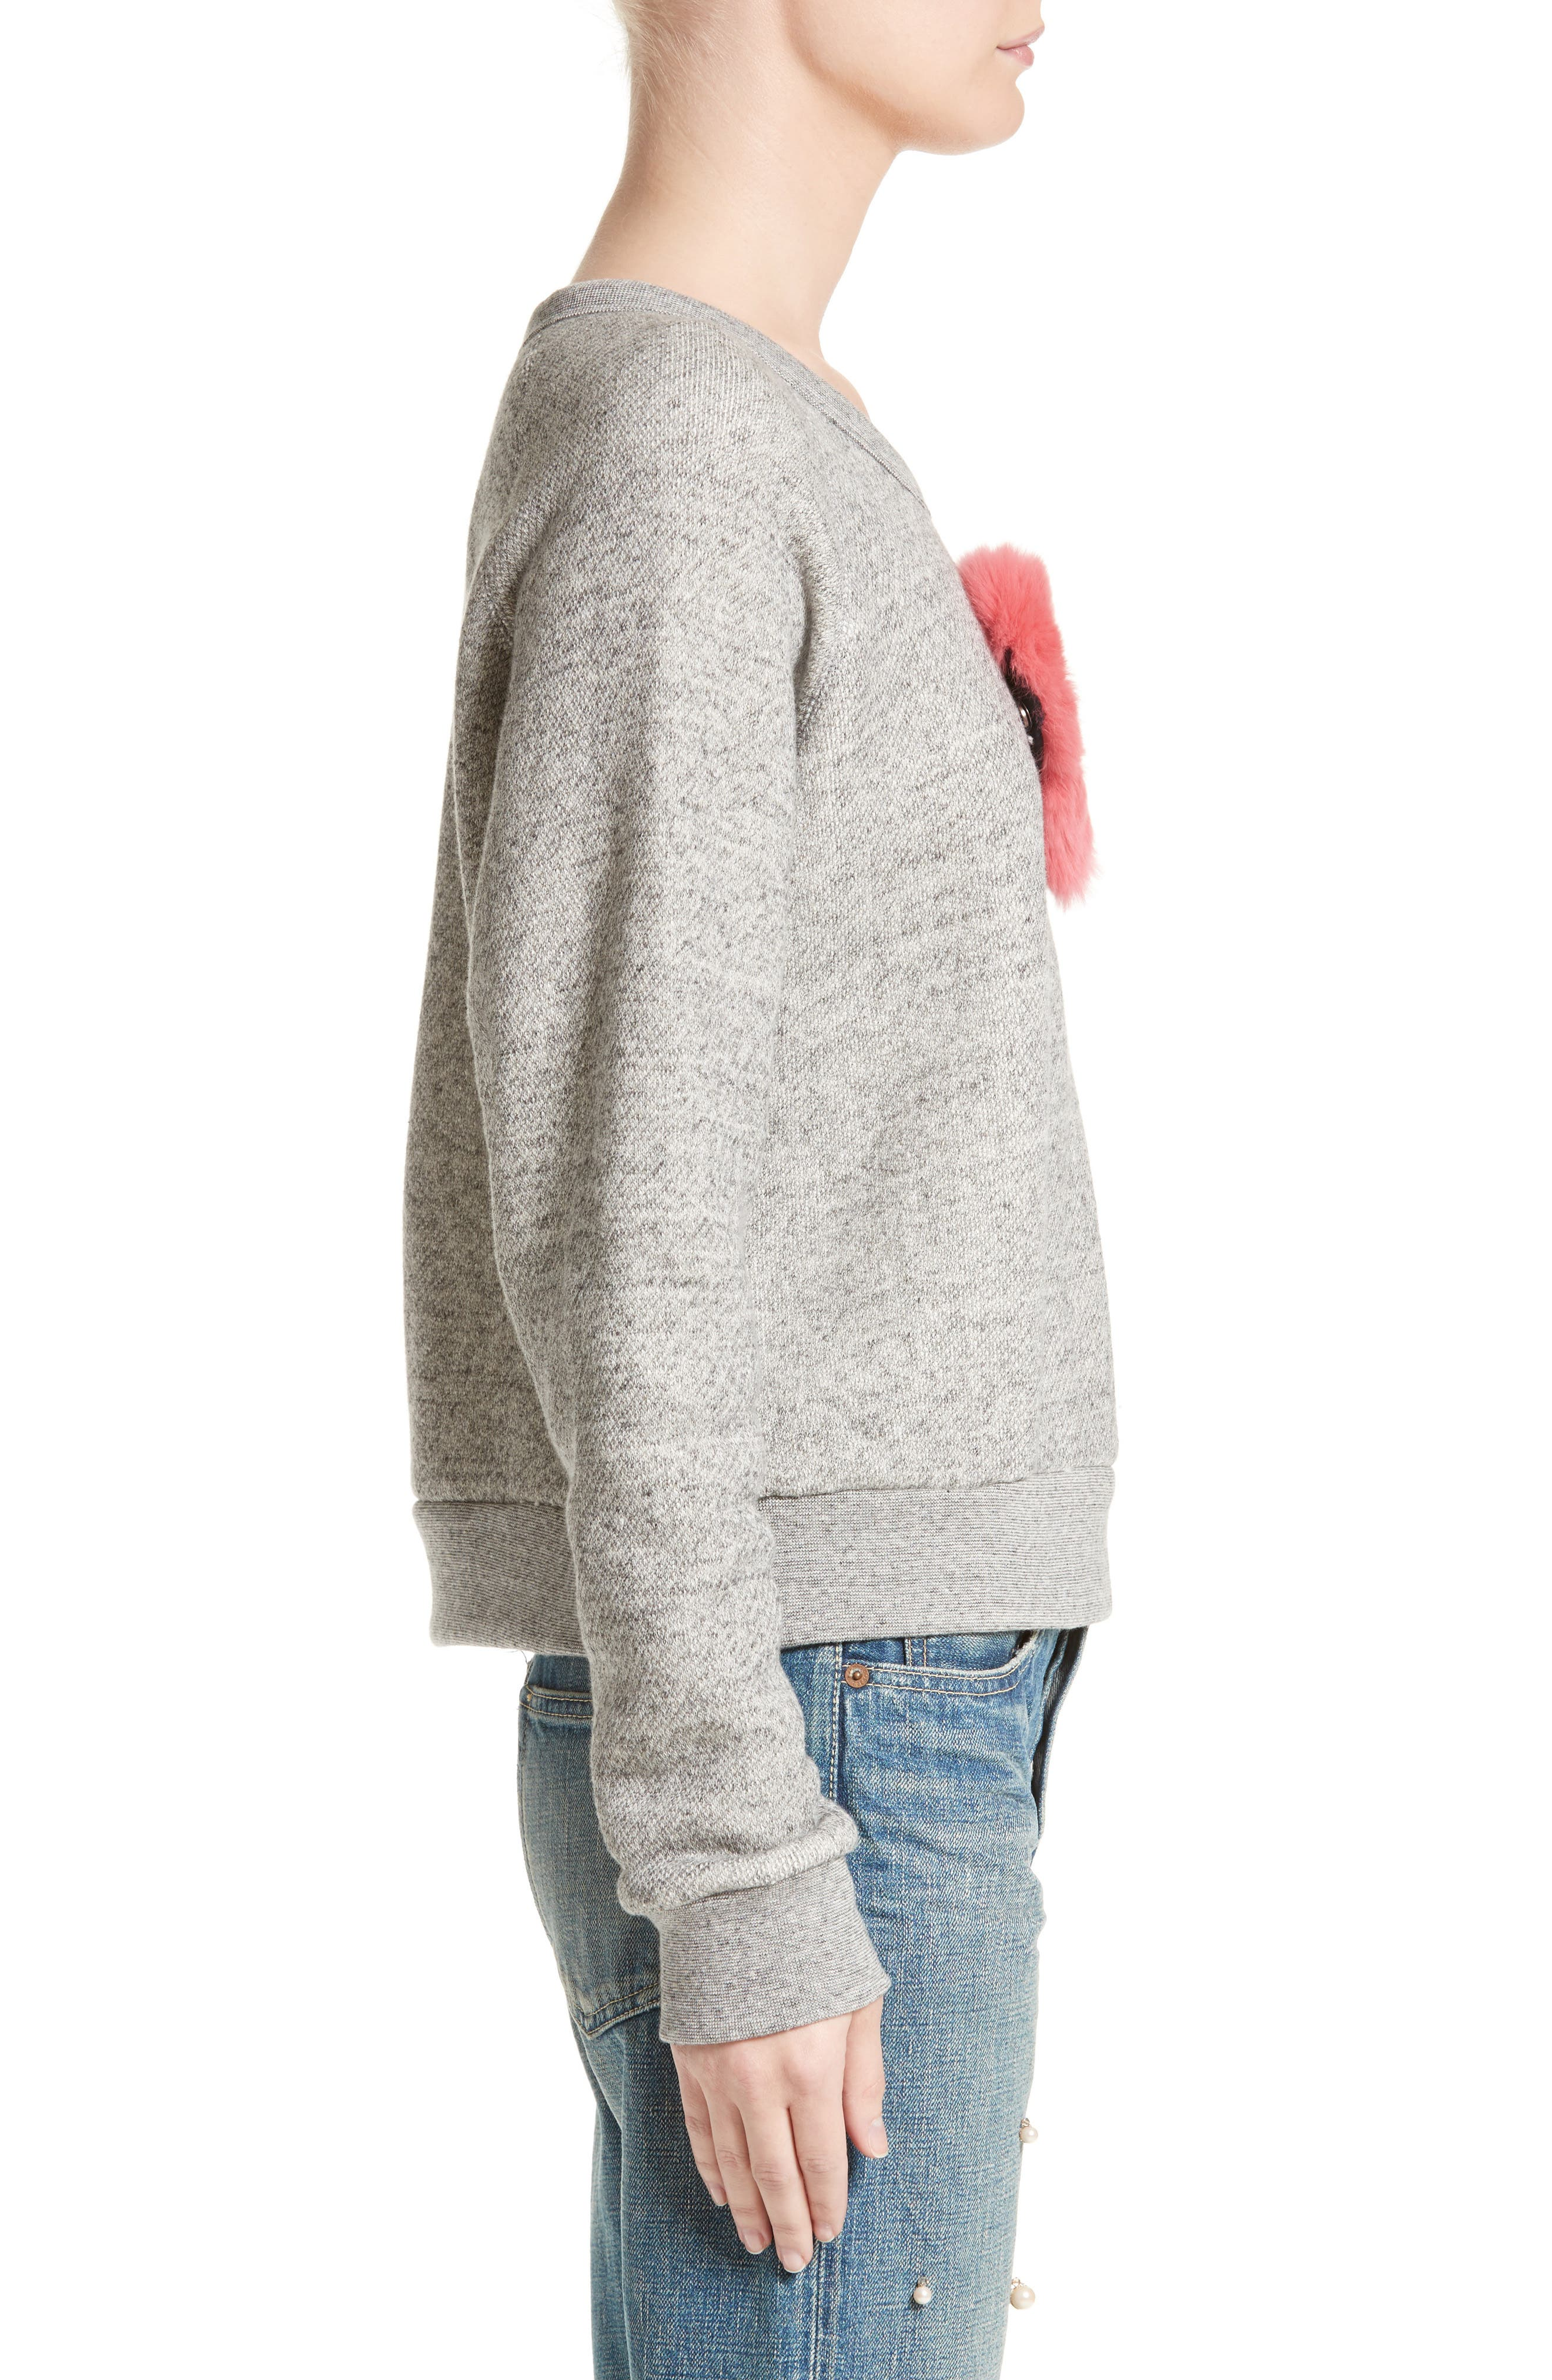 One Heart Pullover,                             Alternate thumbnail 3, color,                             060